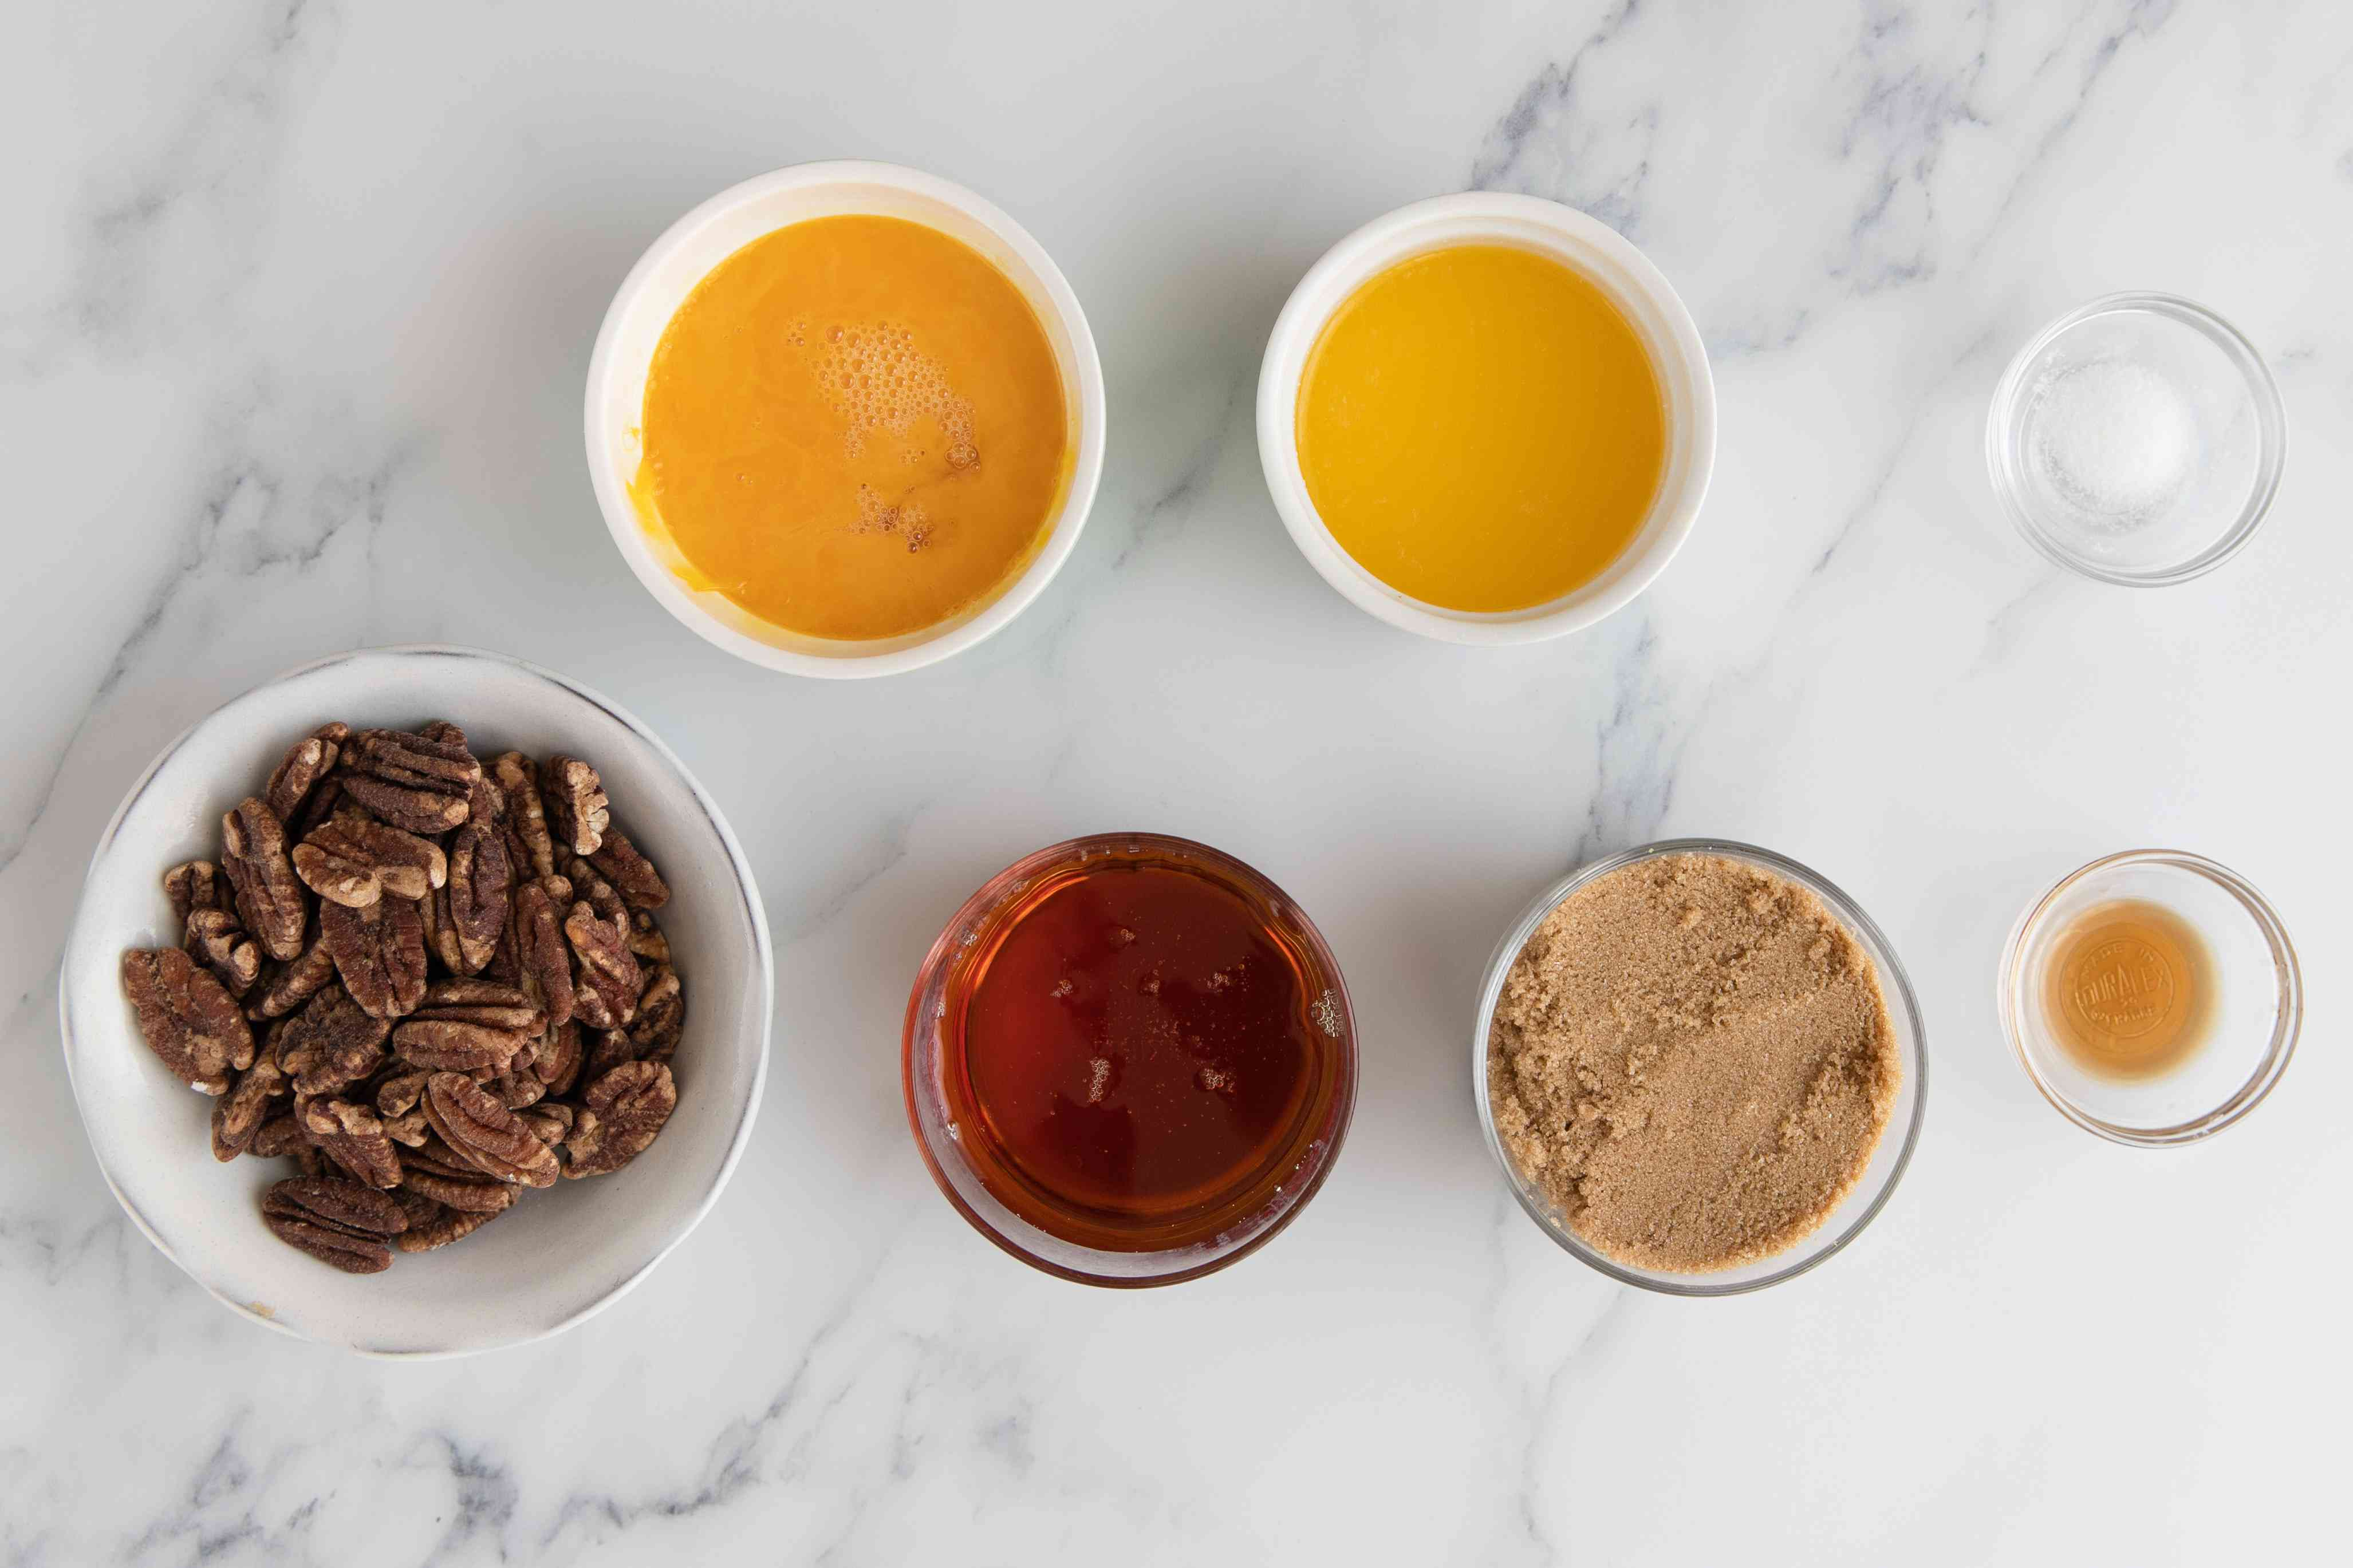 Ingredients for classic Southern pecan pie